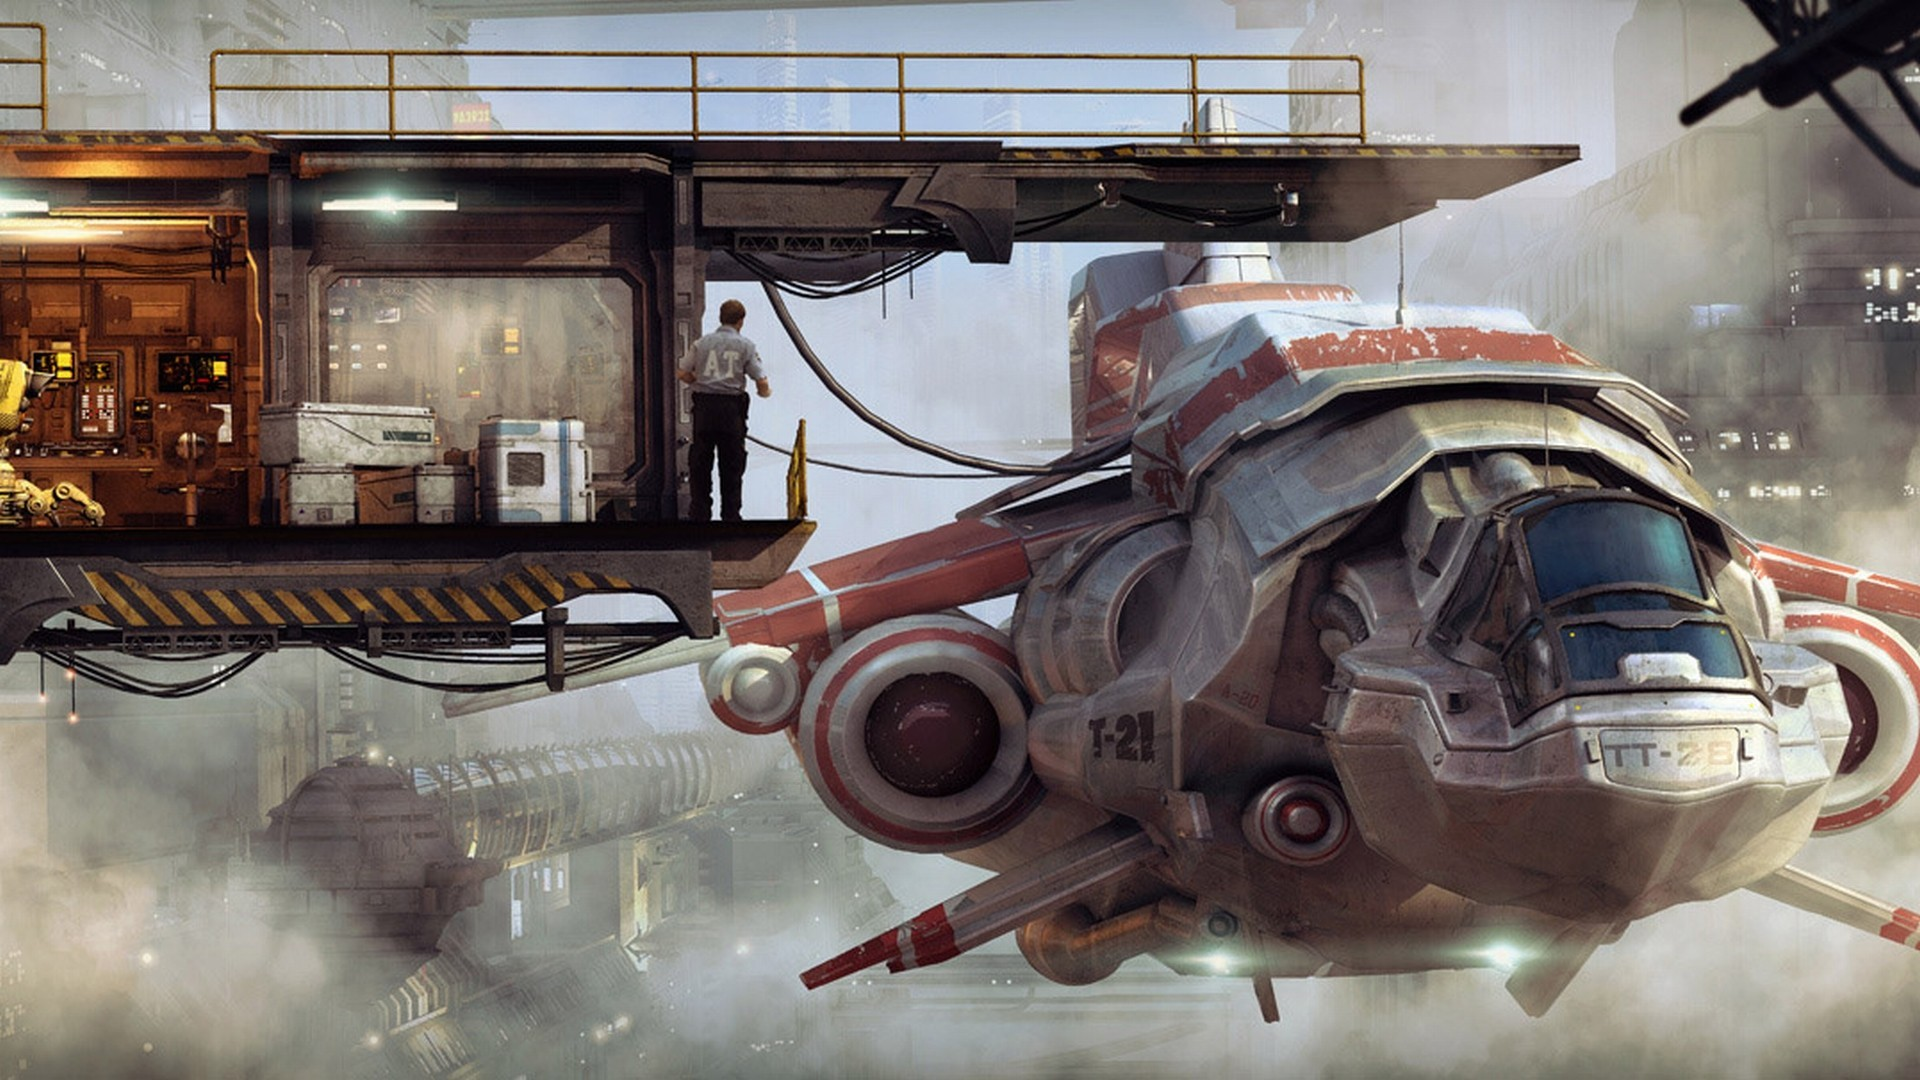 General 1920x1080 spaceship science fiction digital art futuristic vehicle artwork cyberpunk fantasy art